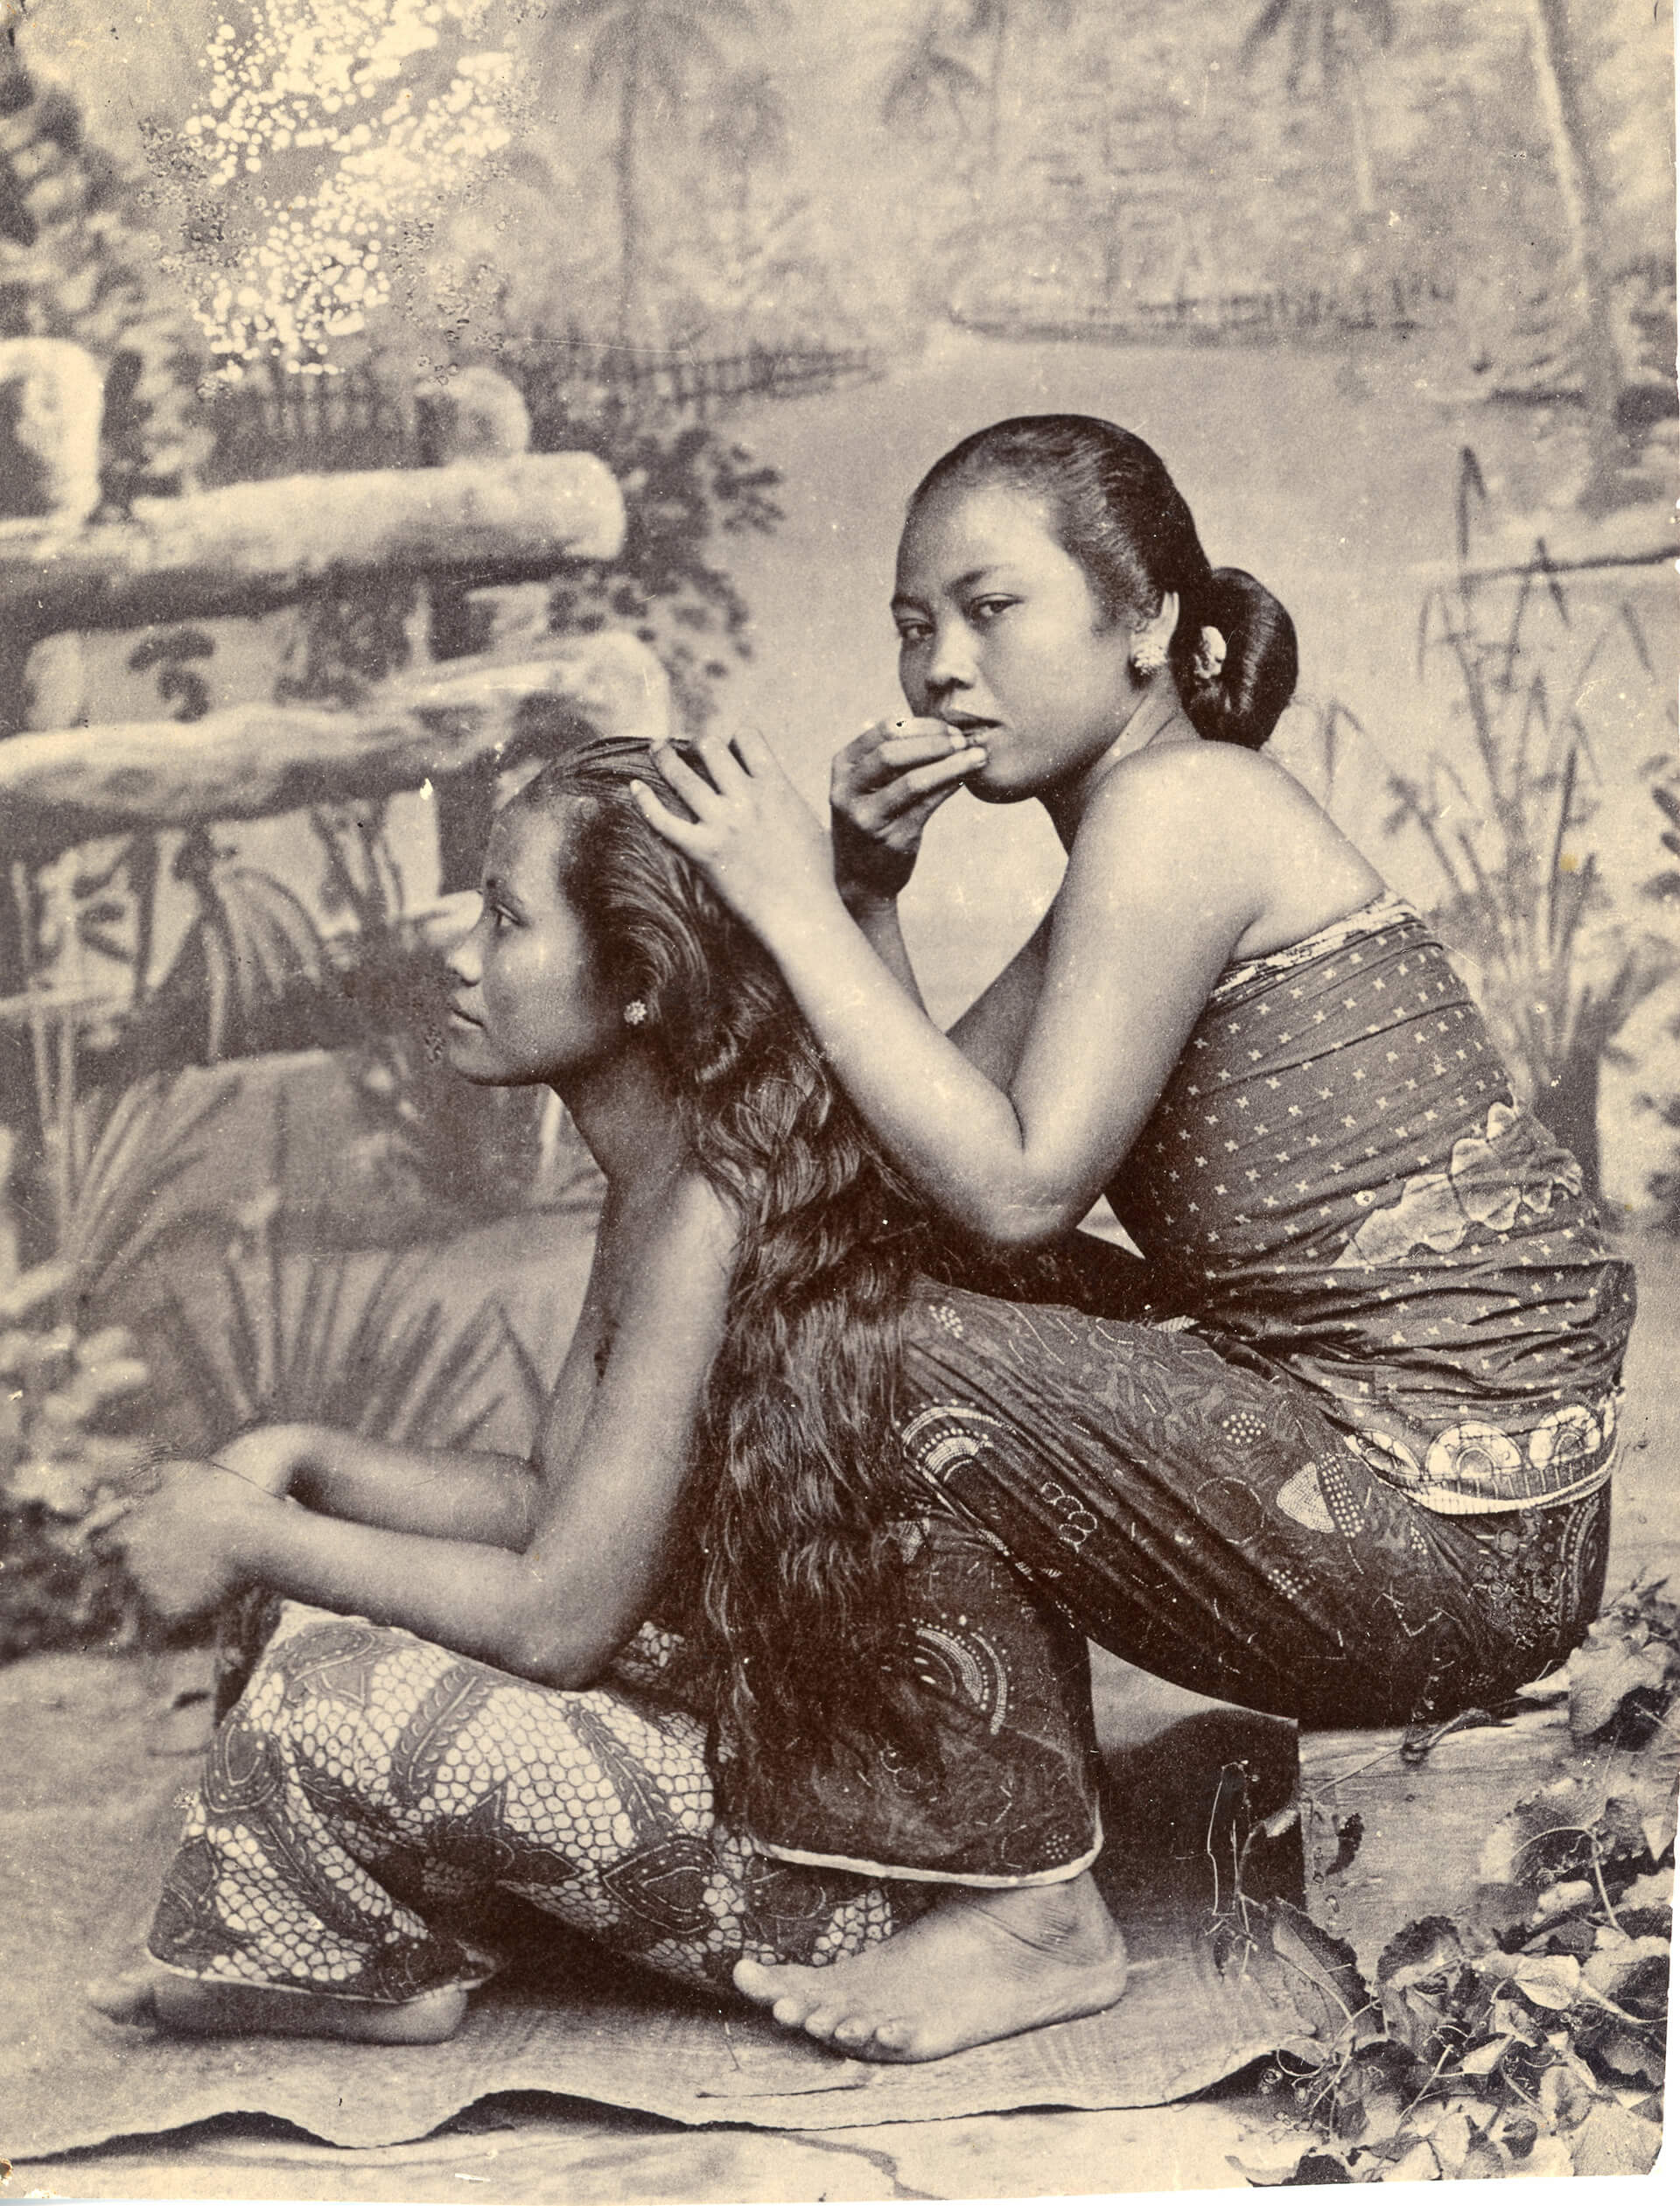 'Photograph of Two Ladies' allegedly taken by Kassian Céphas in the 1900s | (Re)Imagining the Image: Contemporary Artists in Asia Converse with Photography | Kassian Céphas | STIRworld